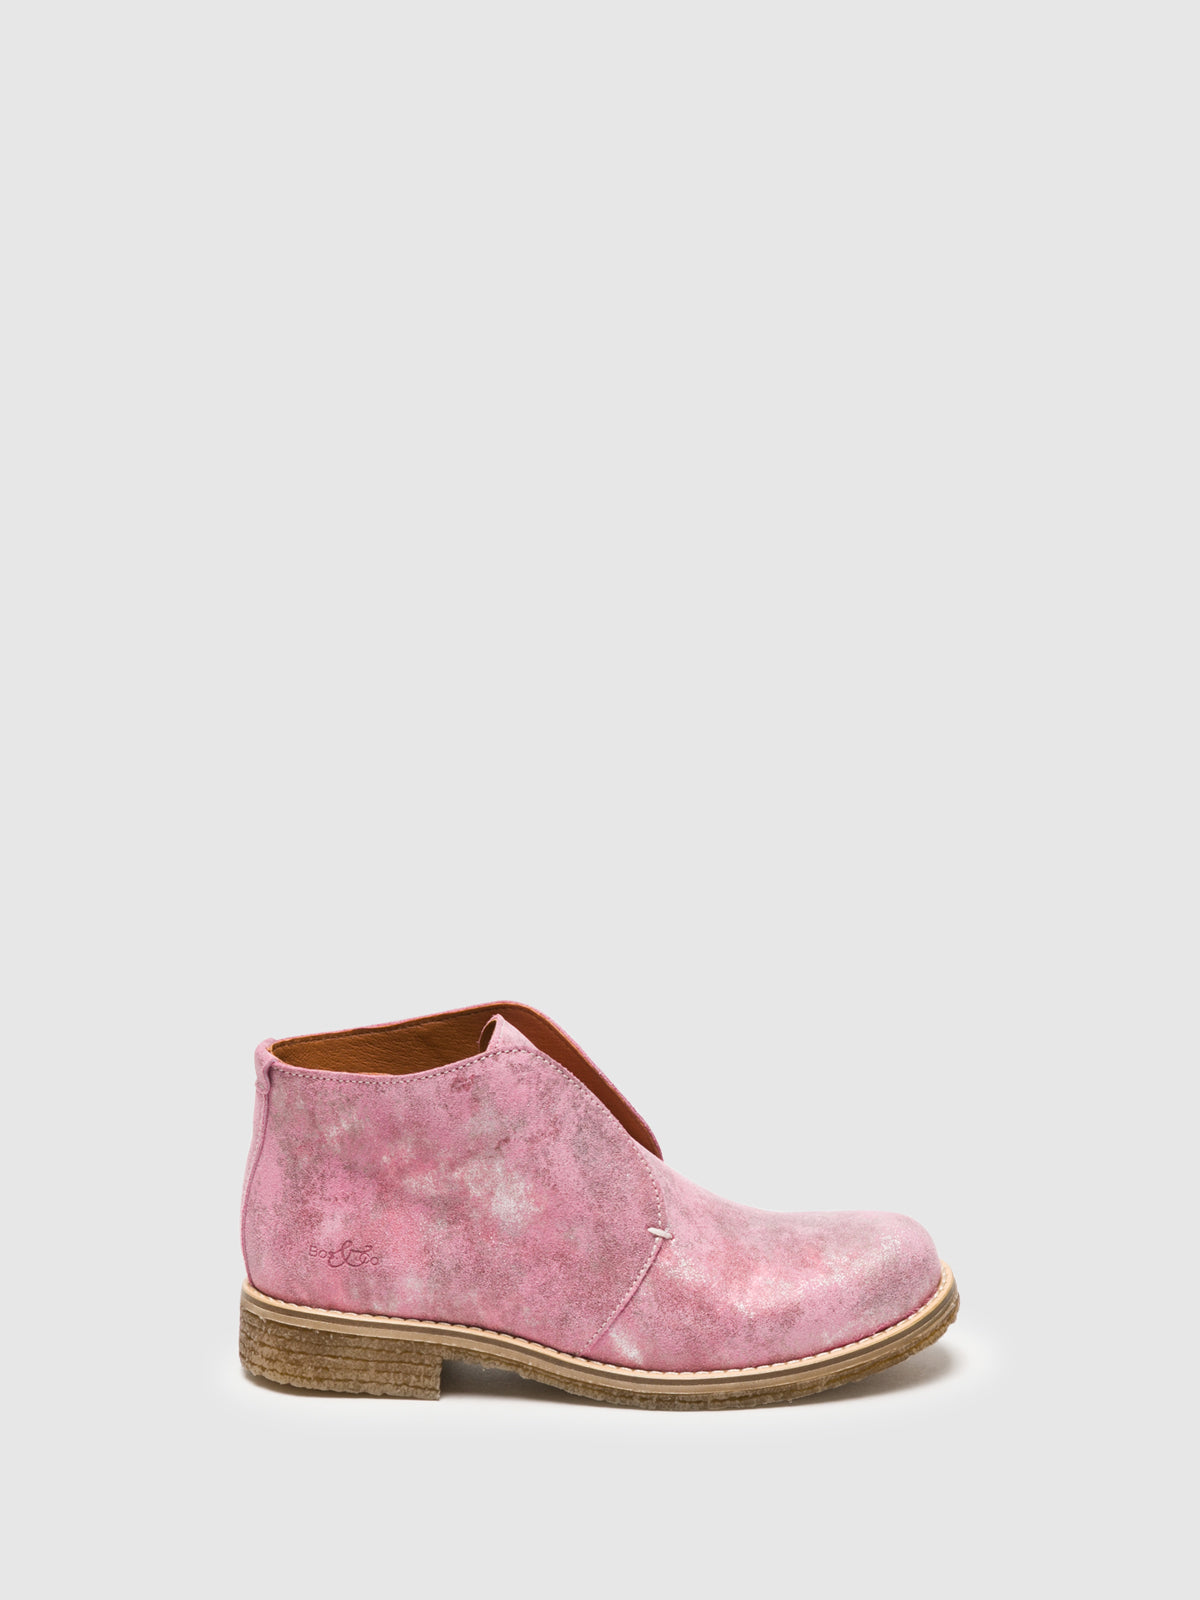 Bos&Co Pink Round Toe Ankle Boots